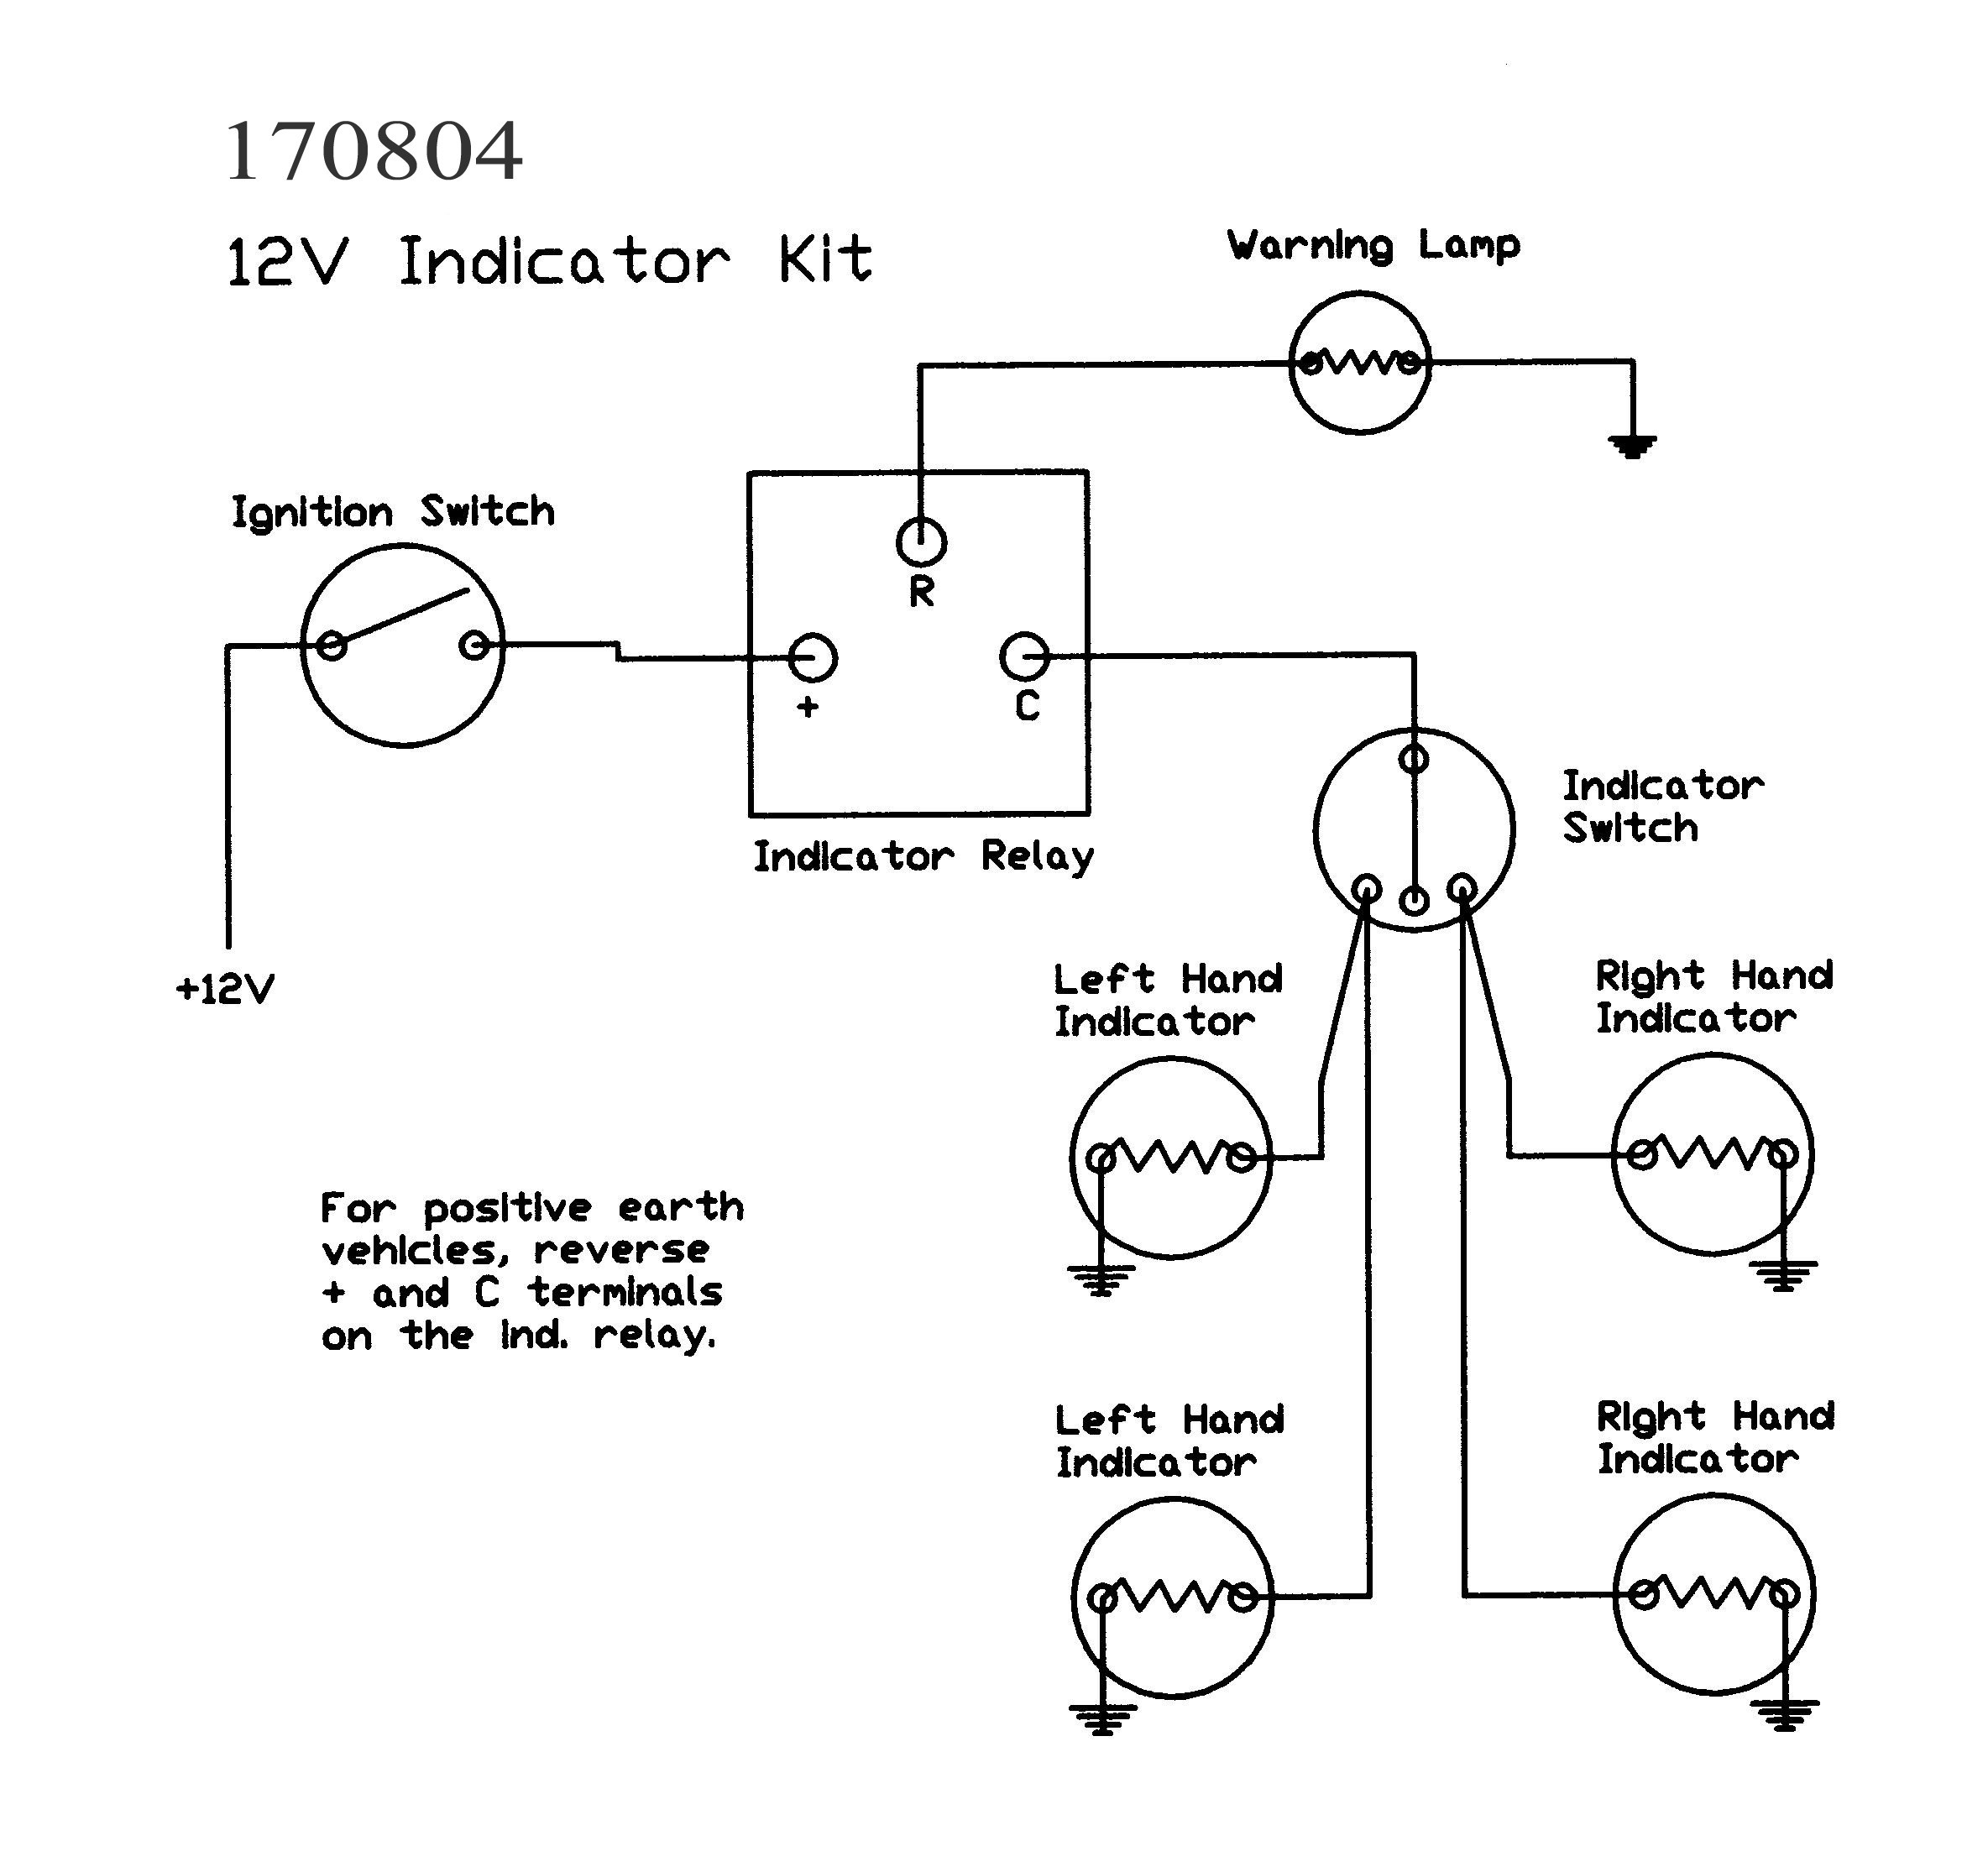 Diagram T12 2 Pin Wiring Diagram Full Version Hd Quality Wiring Diagram Diagramarrons Brunisport It